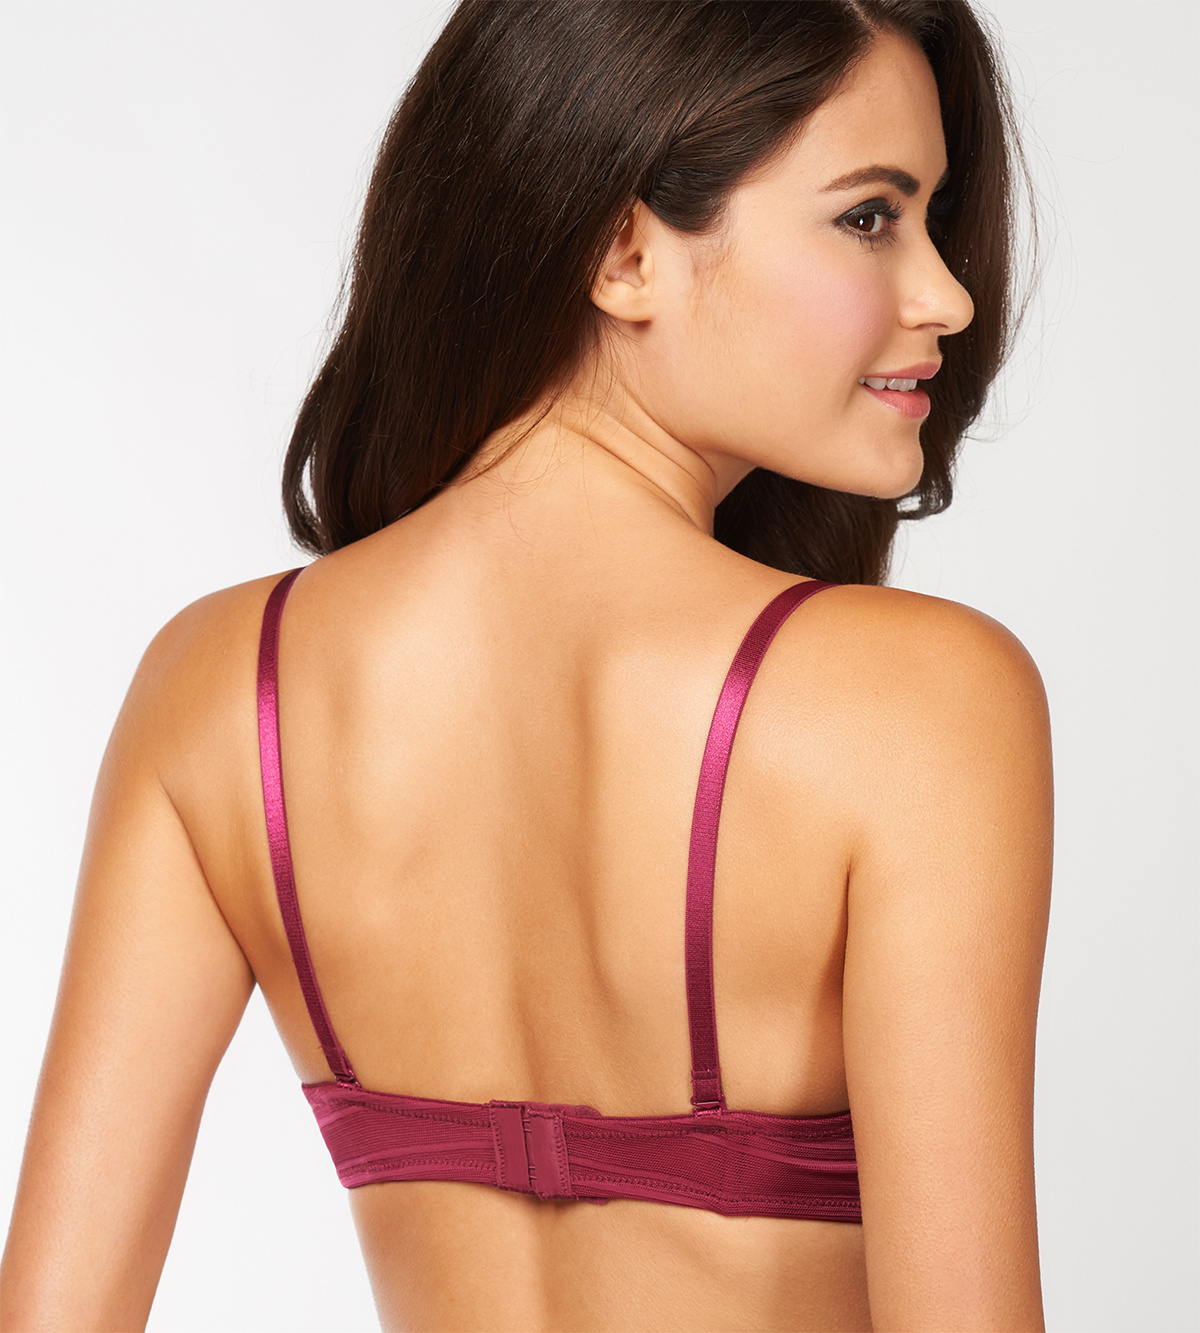 63c3a2817827d Fashion Wired Padded Bra With Detachable Straps Mocca (1007274400FW)